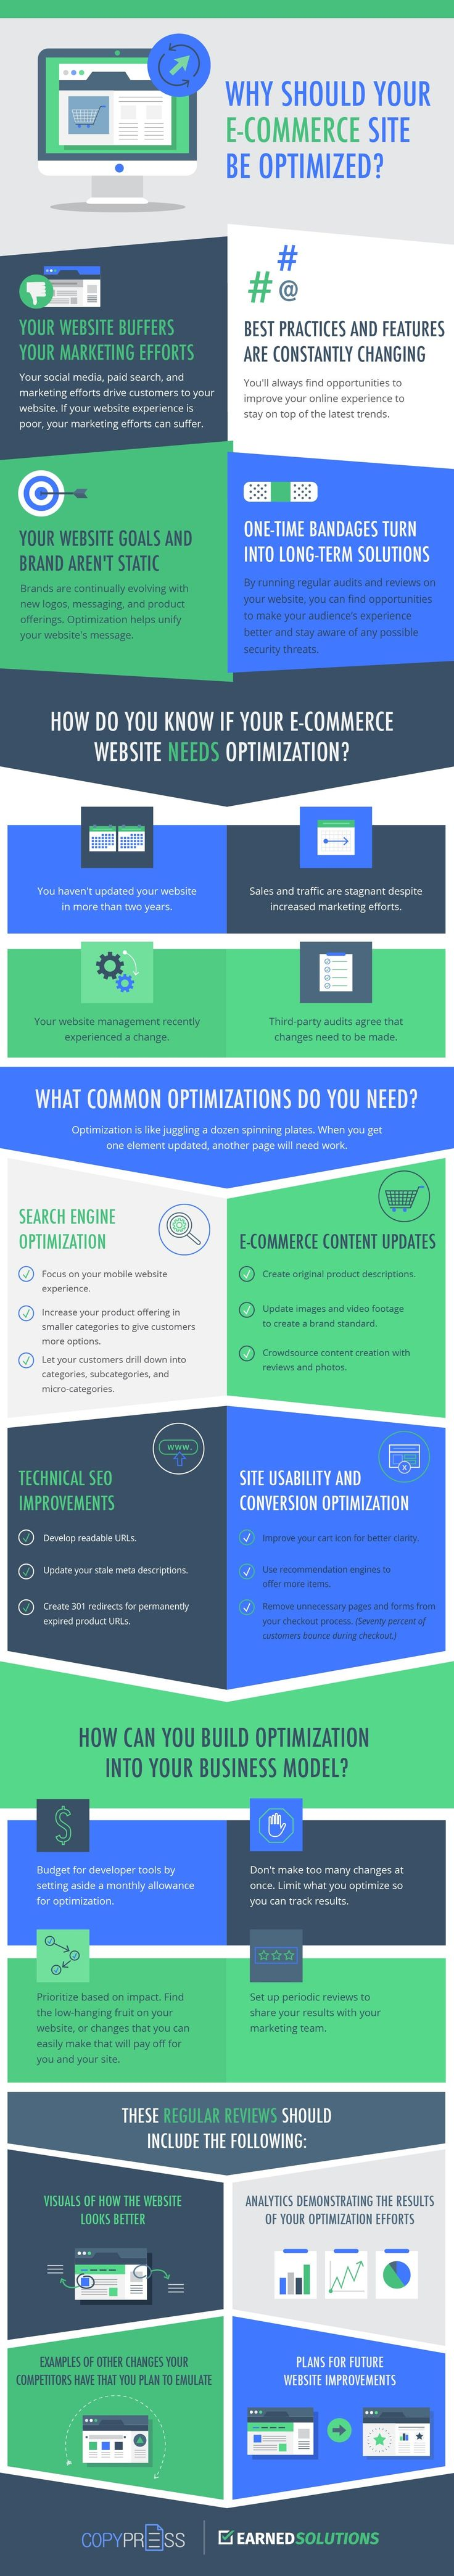 Why Should Your E-commerce Site be Optimized? - #infographic